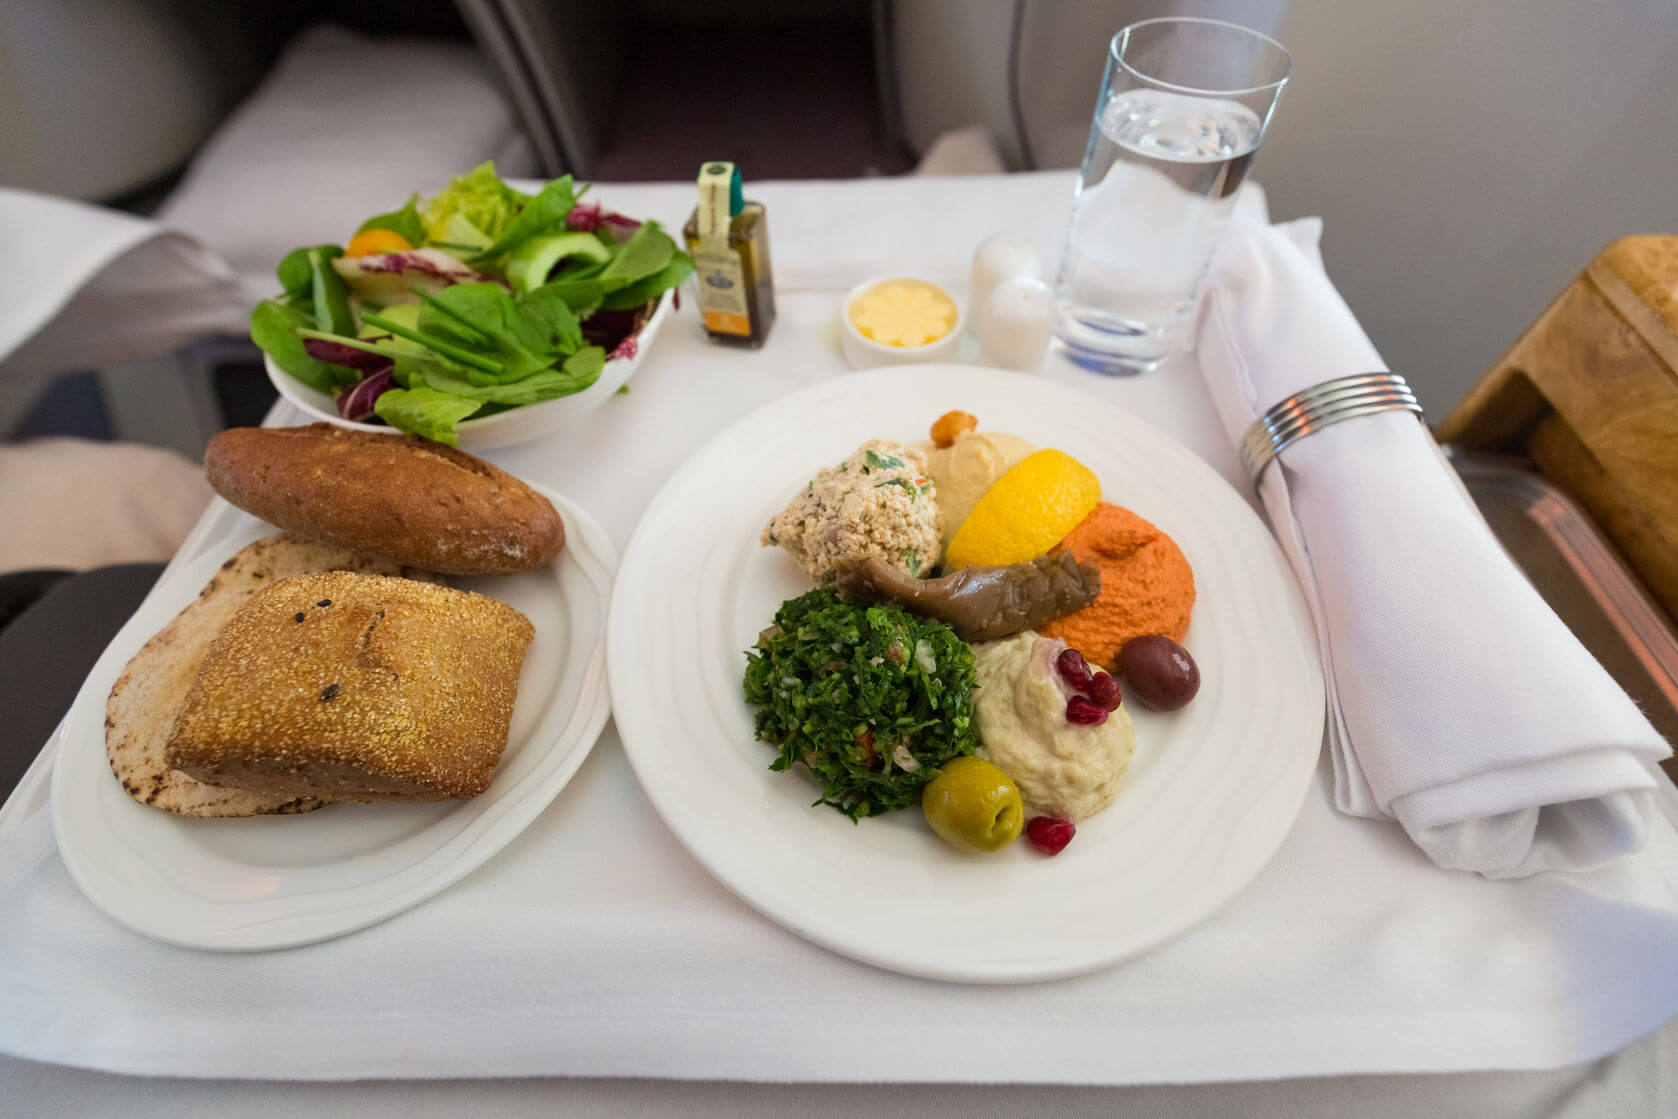 Delta Partially Returning Complimentary Meals